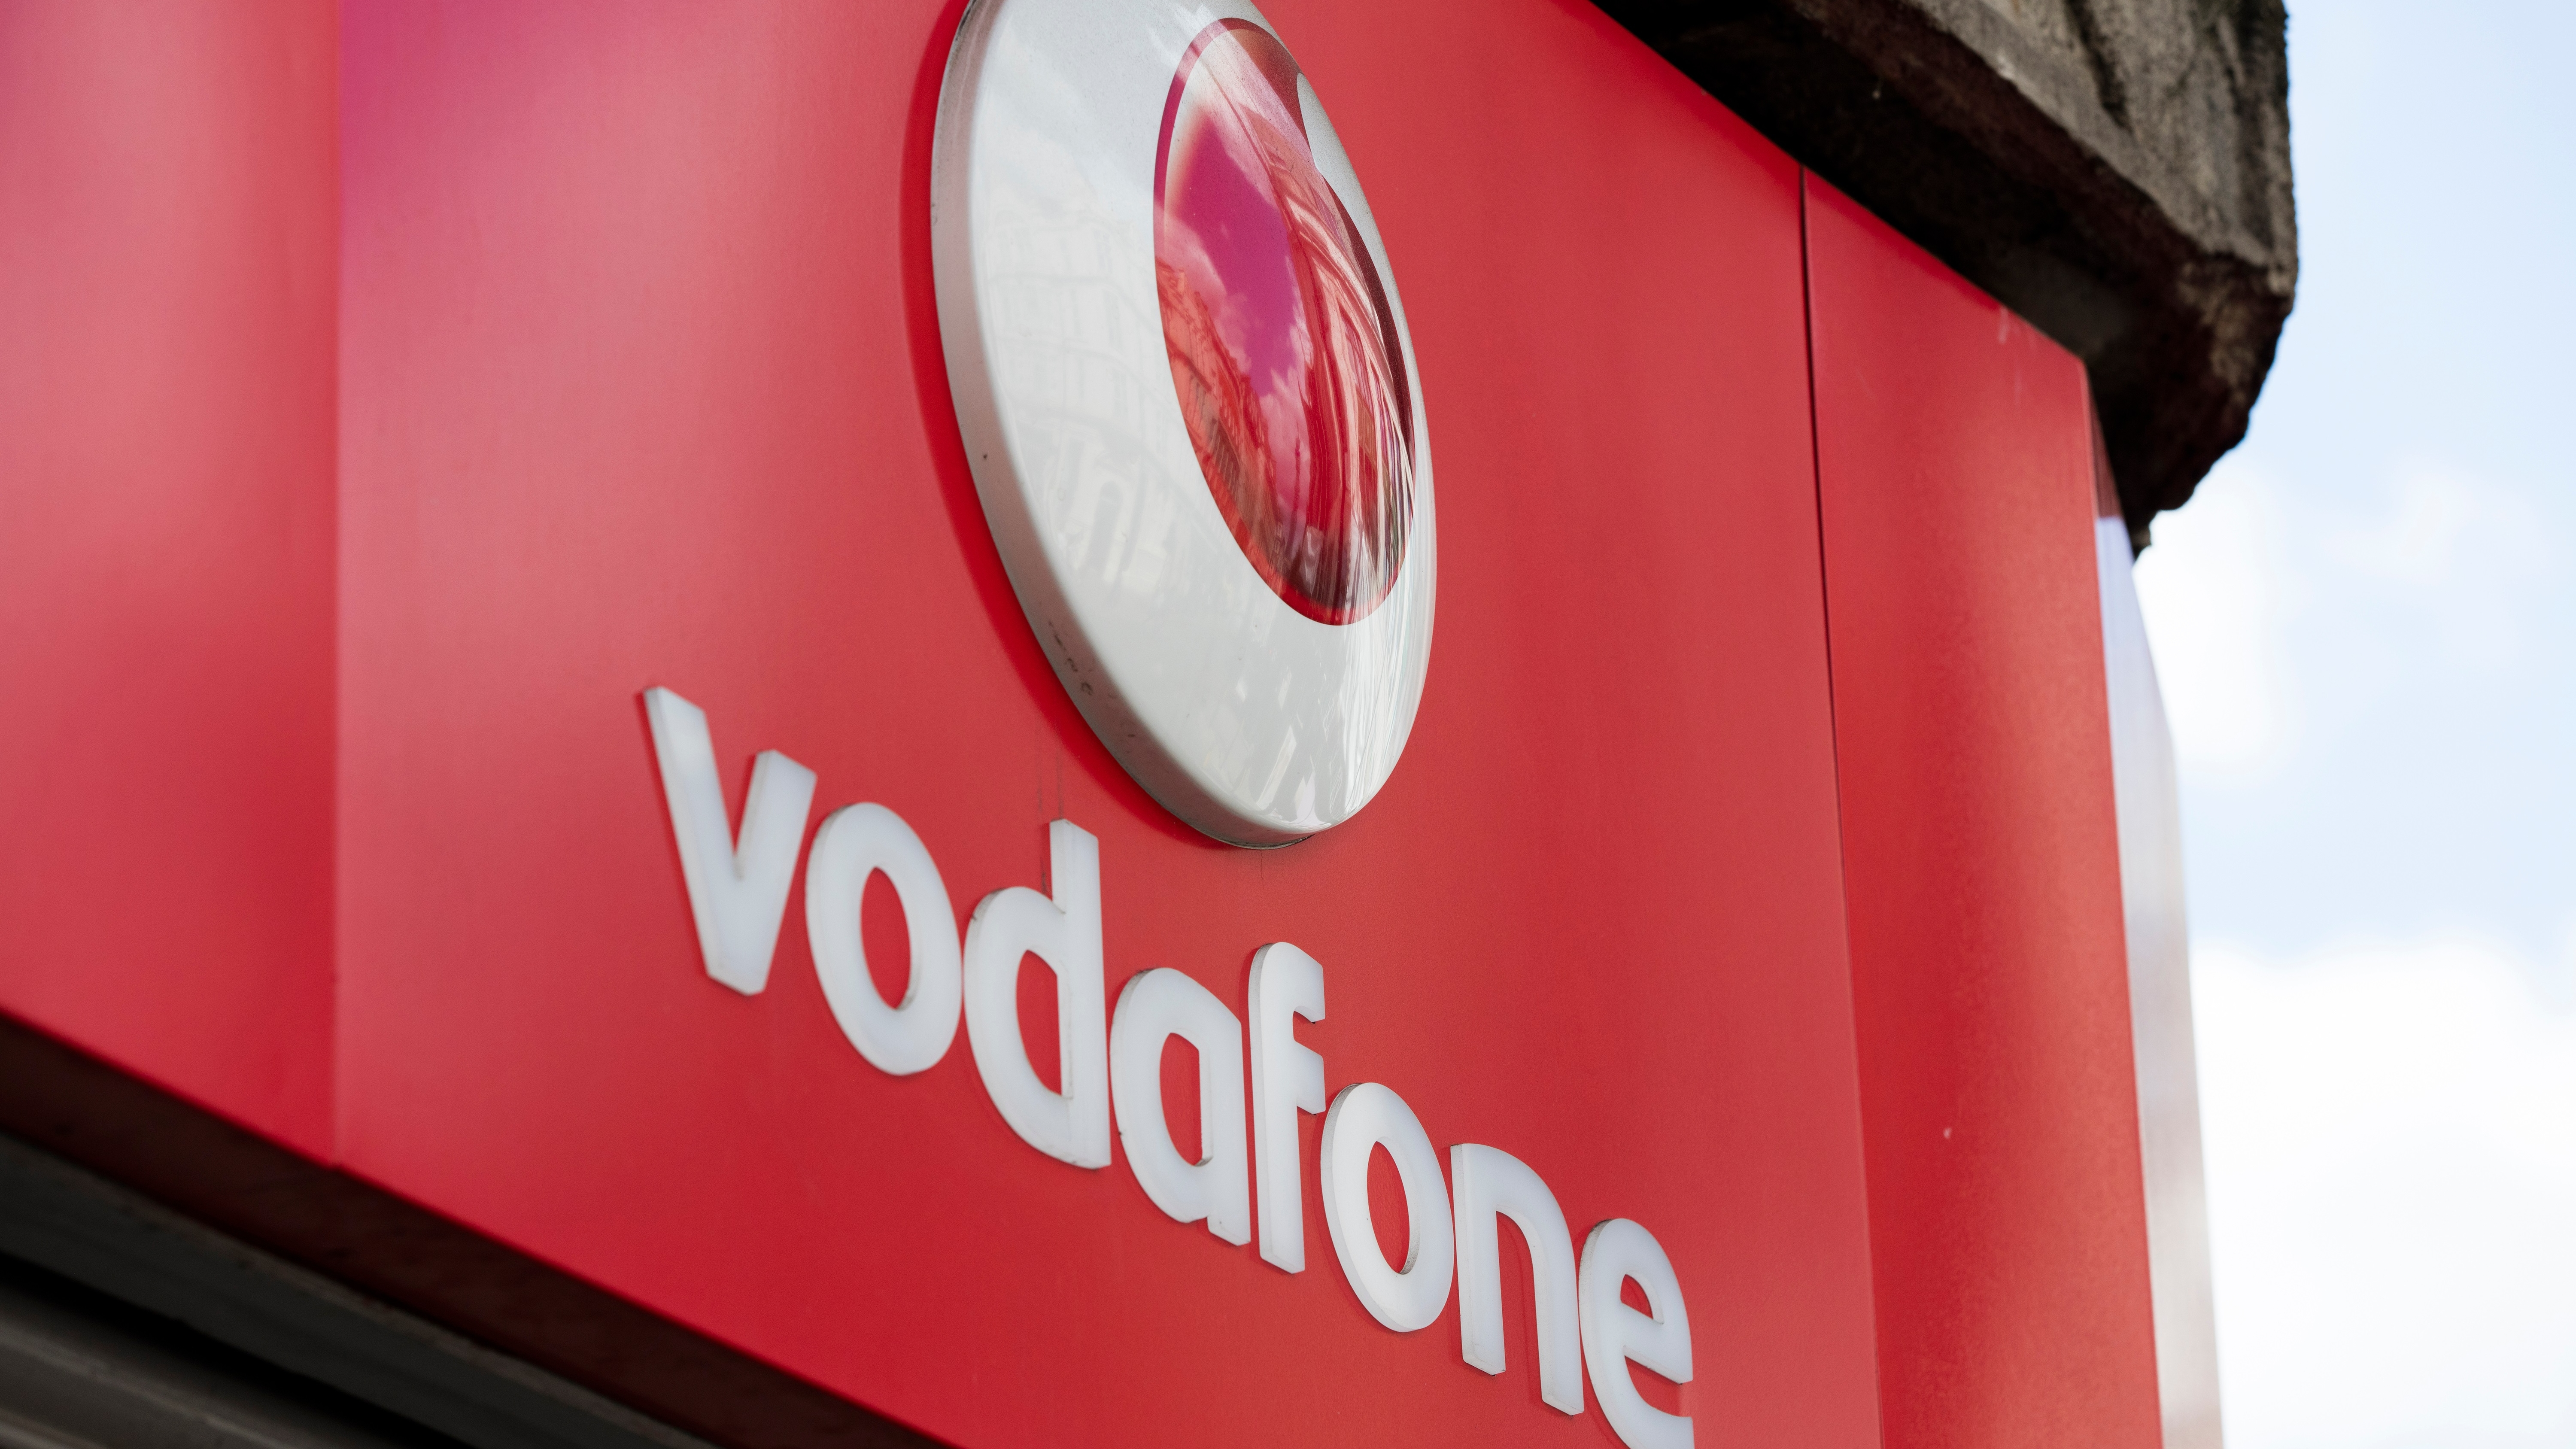 Vodafone customers can grab cheap cinema tickets & more with its new